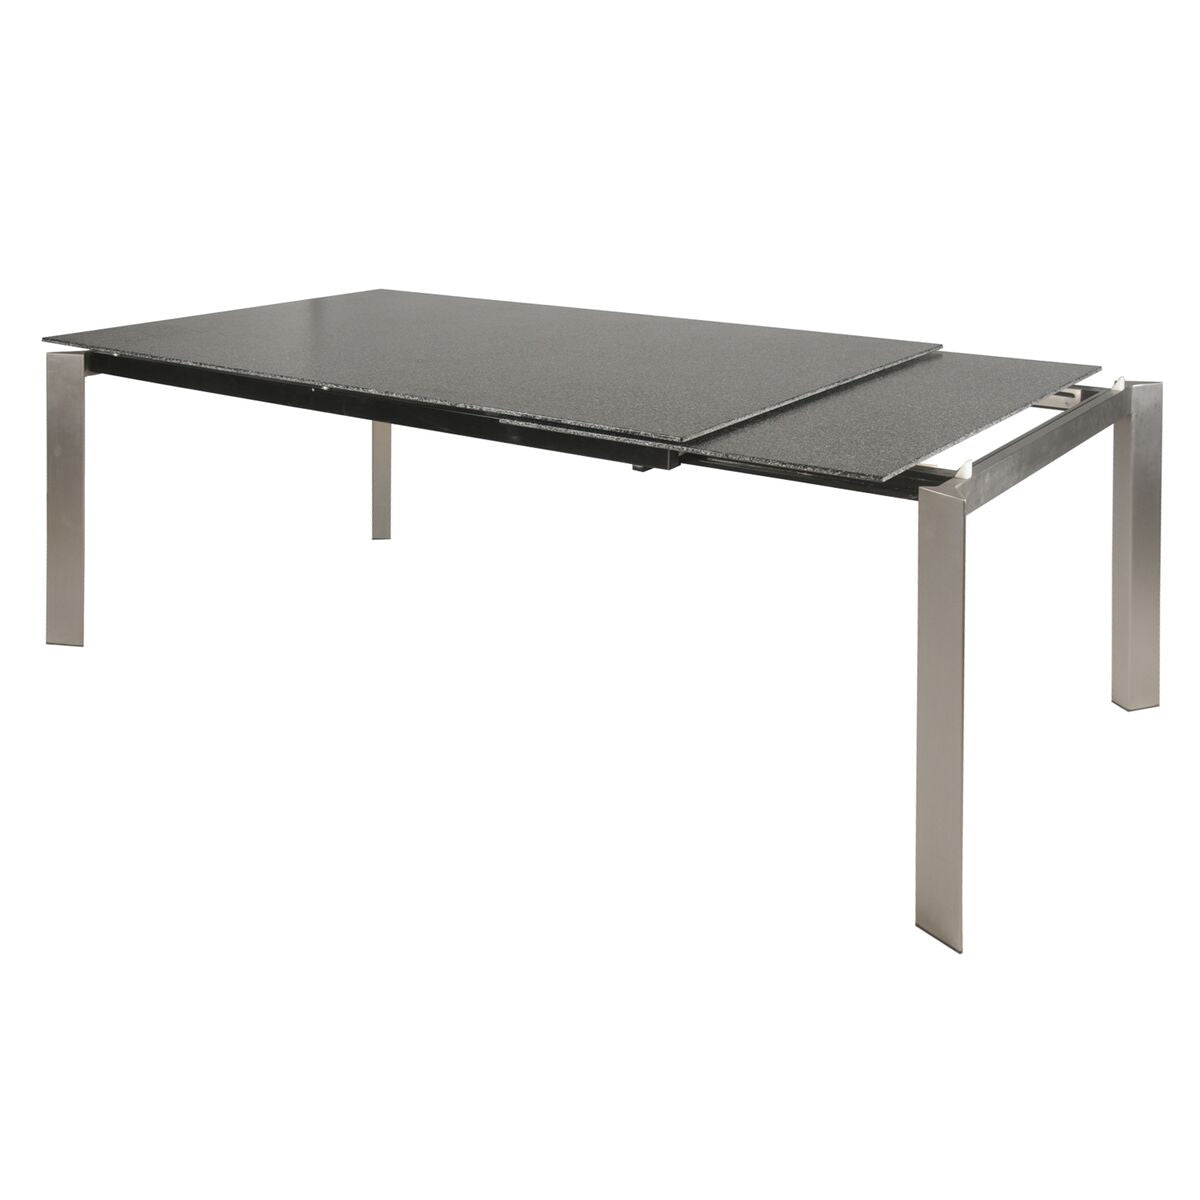 "55"" - 78"" Extending Executive Desk/Conference Table of Gray Glass & Steel"